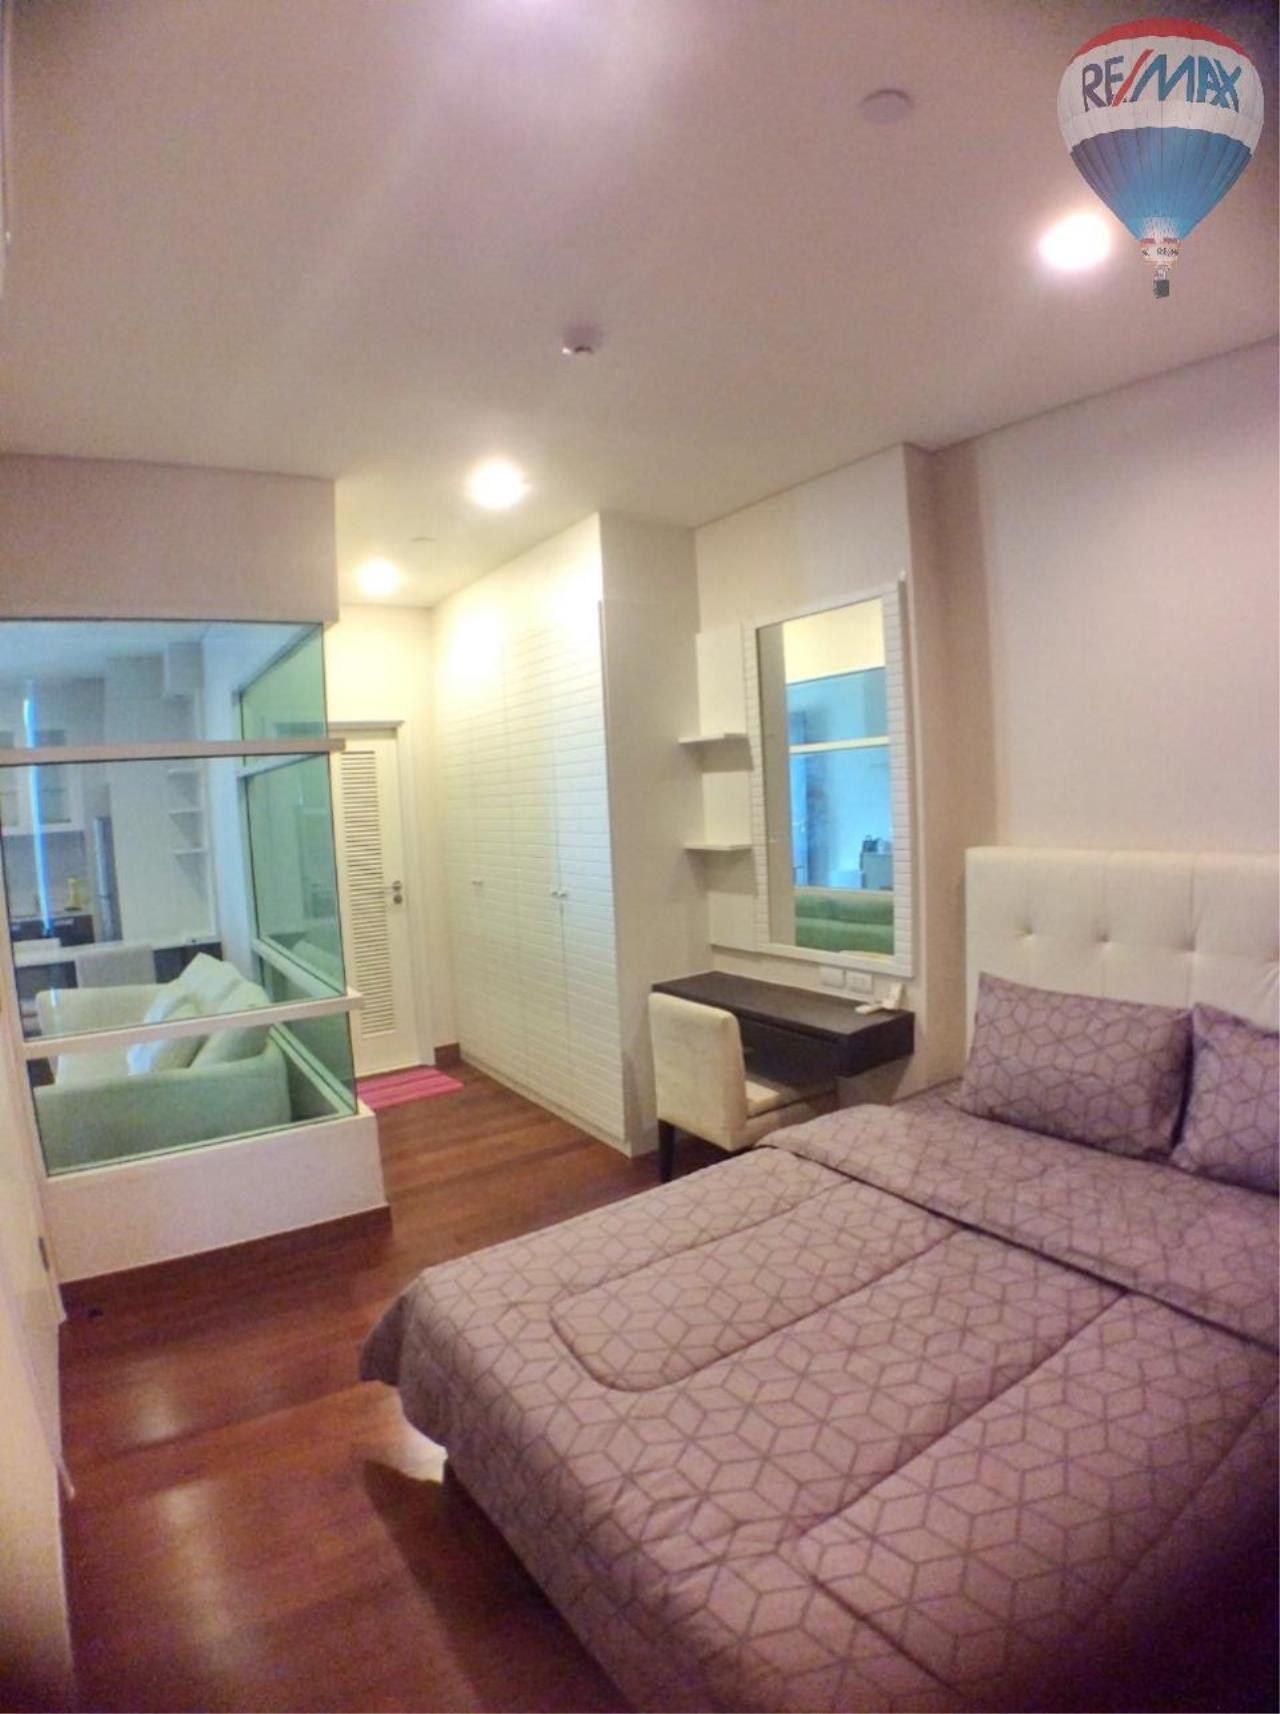 RE/MAX BestLife Agency's Ivy Thonglor 1 bedroom 1 bathroom condo for rent Thonglor BTS 7